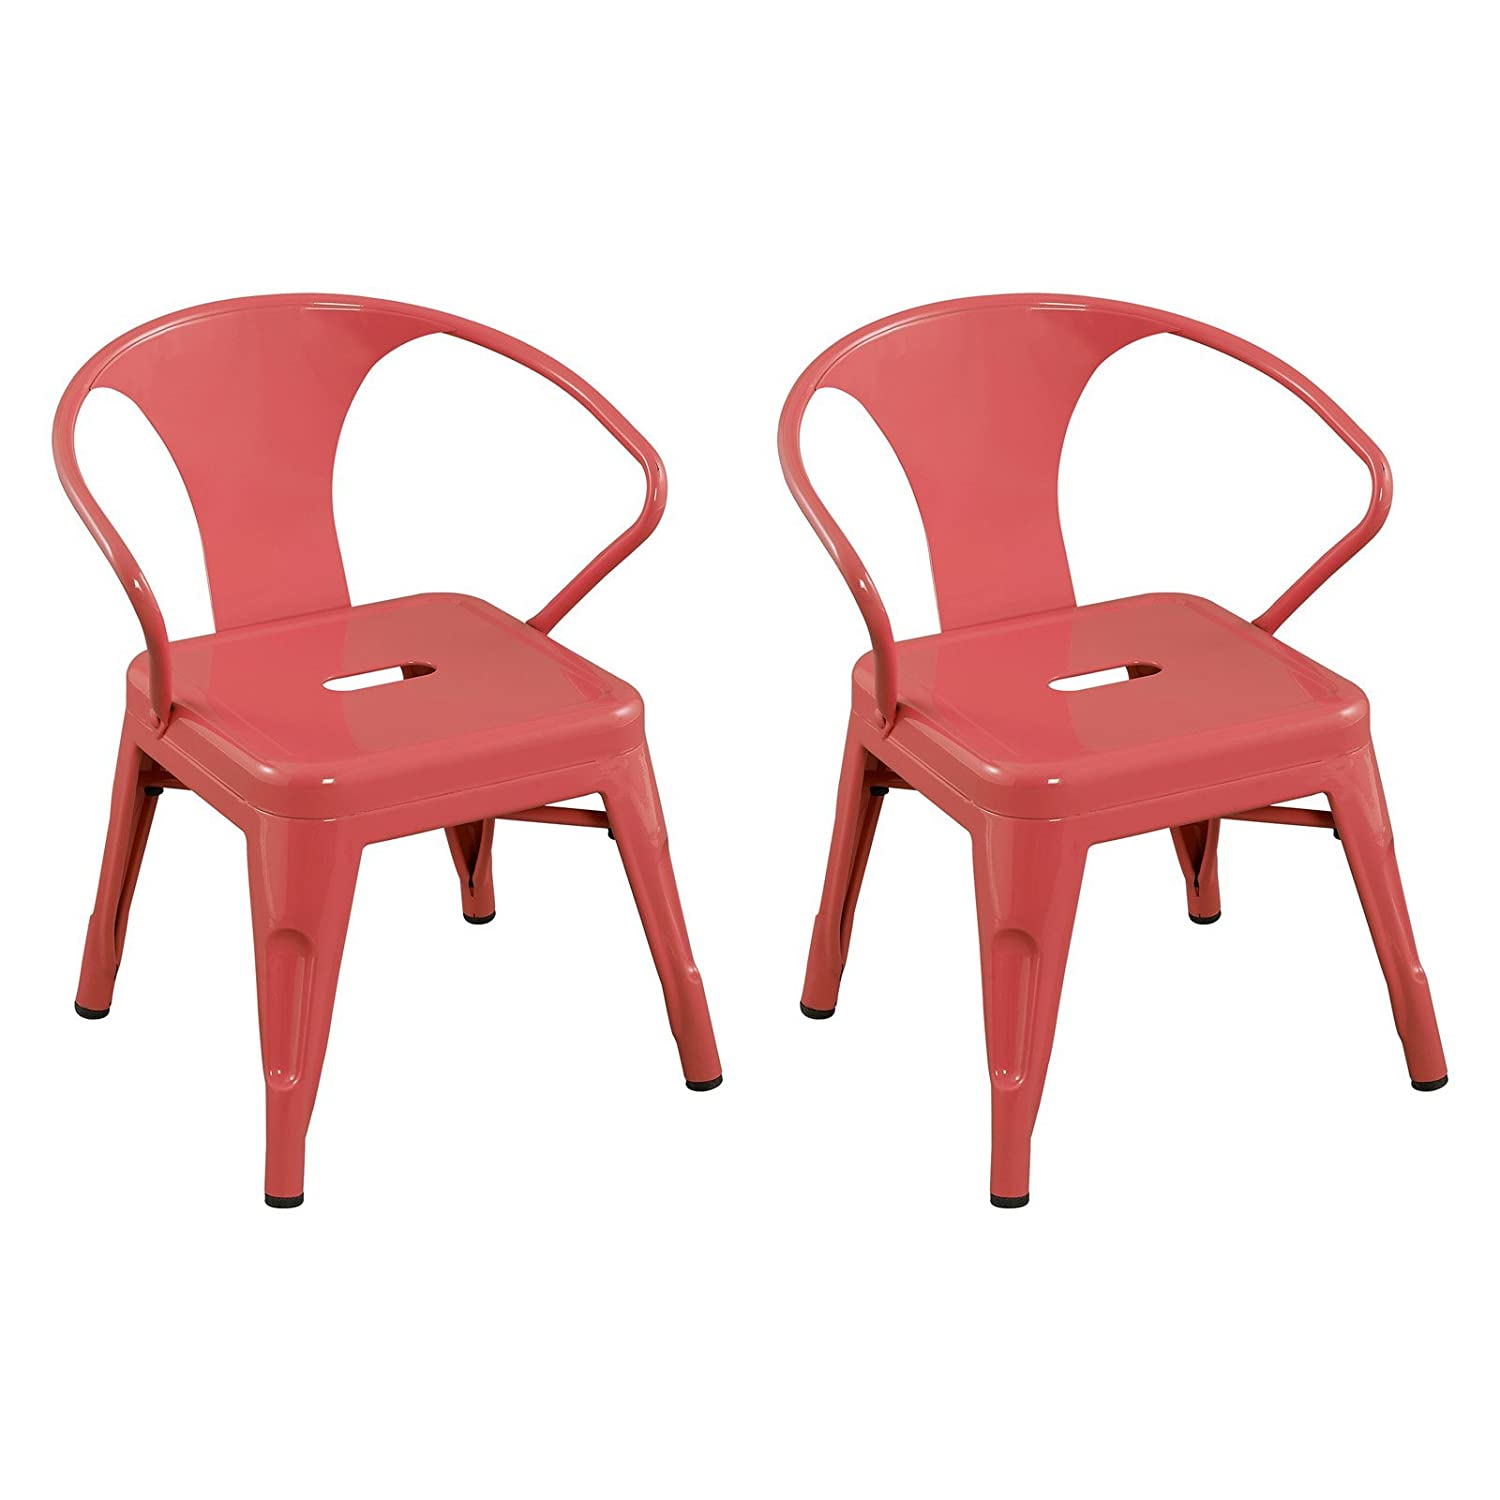 Fabulous Reservation Seating Kids Steel Chair Navy One Size Evergreenethics Interior Chair Design Evergreenethicsorg